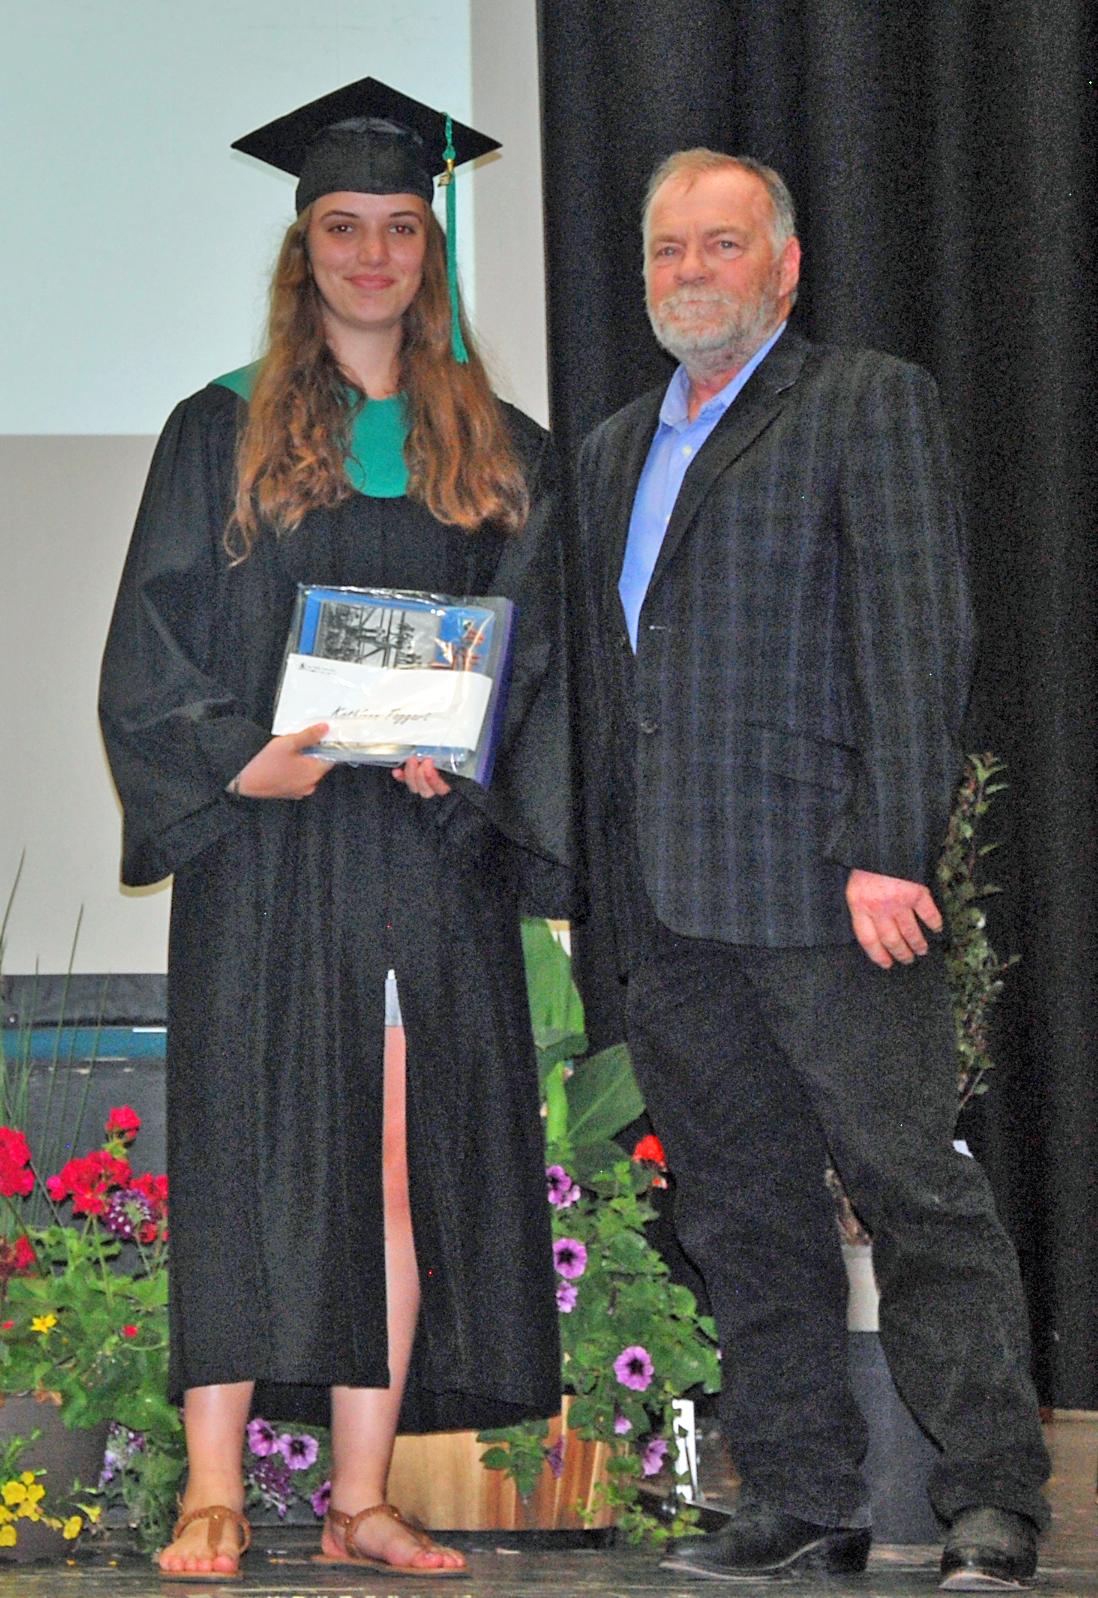 2017 History Scholarship Recipient